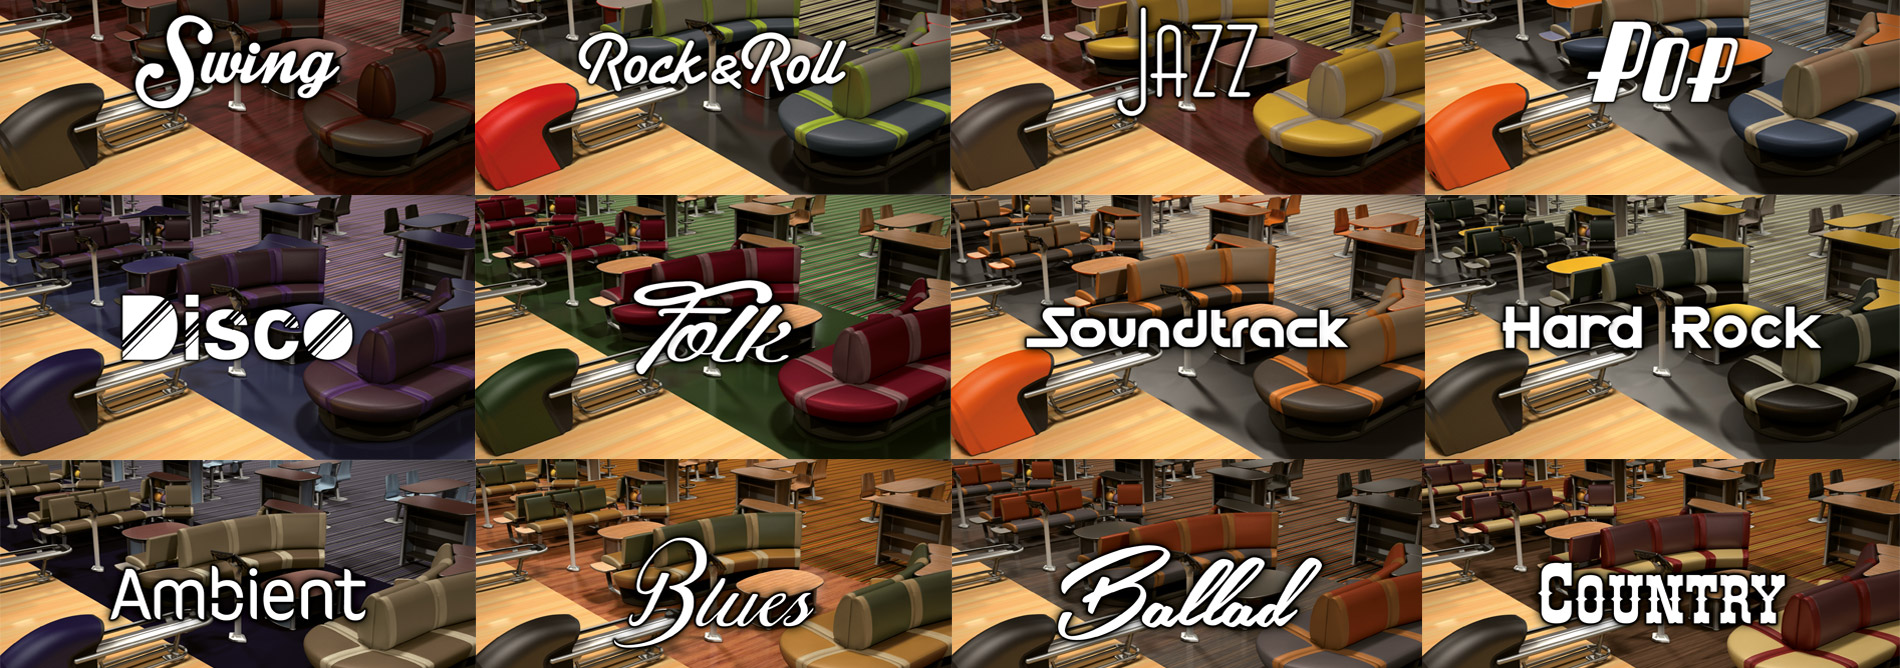 Bowling-QubicaAMF-furniture-harmony-color-combination-banner12.jpg